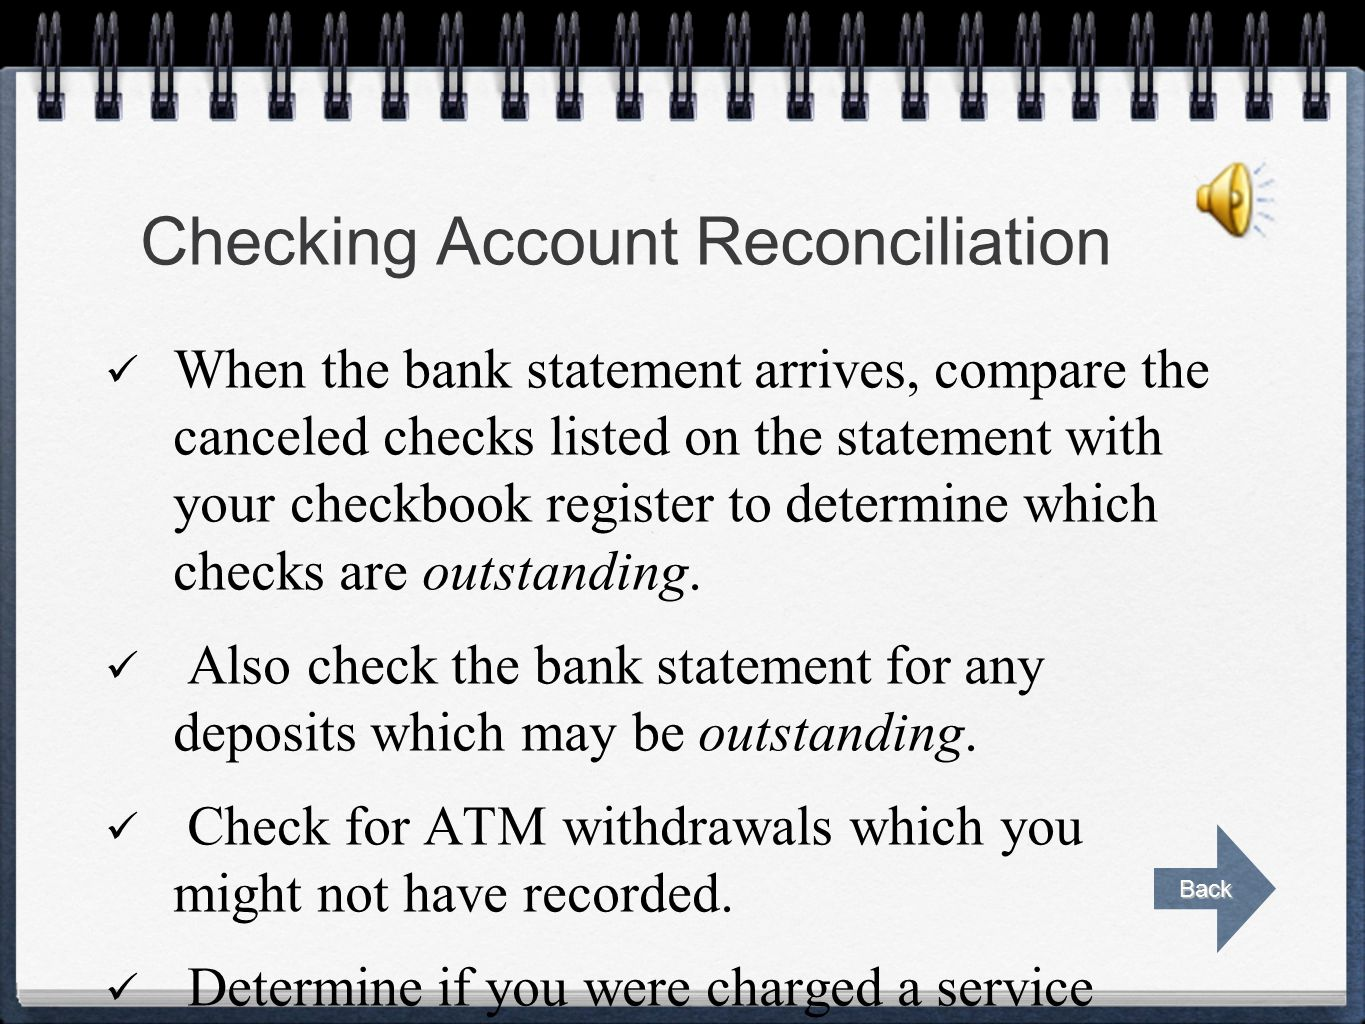 Checking Account Reconciliation When the bank statement arrives, compare the canceled checks listed on the statement with your checkbook register to determine which checks are outstanding.